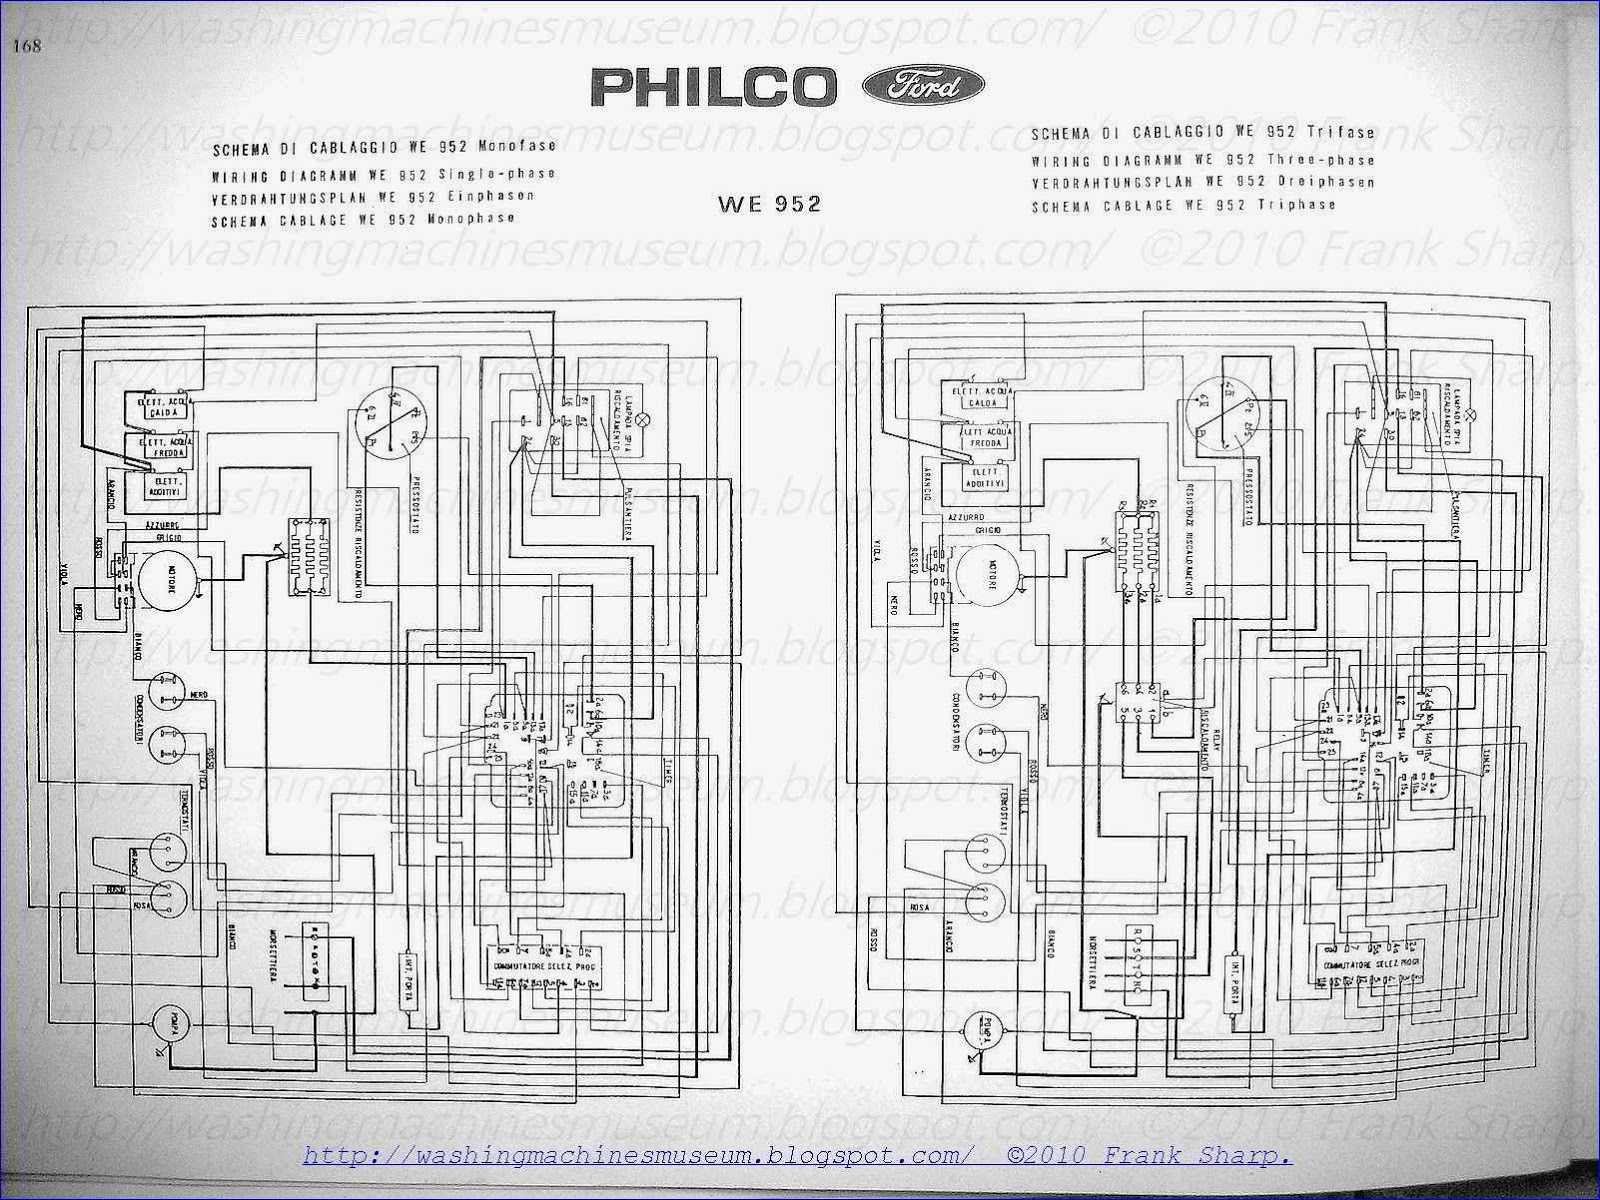 Washer Rama Museum   Philco Ford Mod  We952 Schematic Diagram